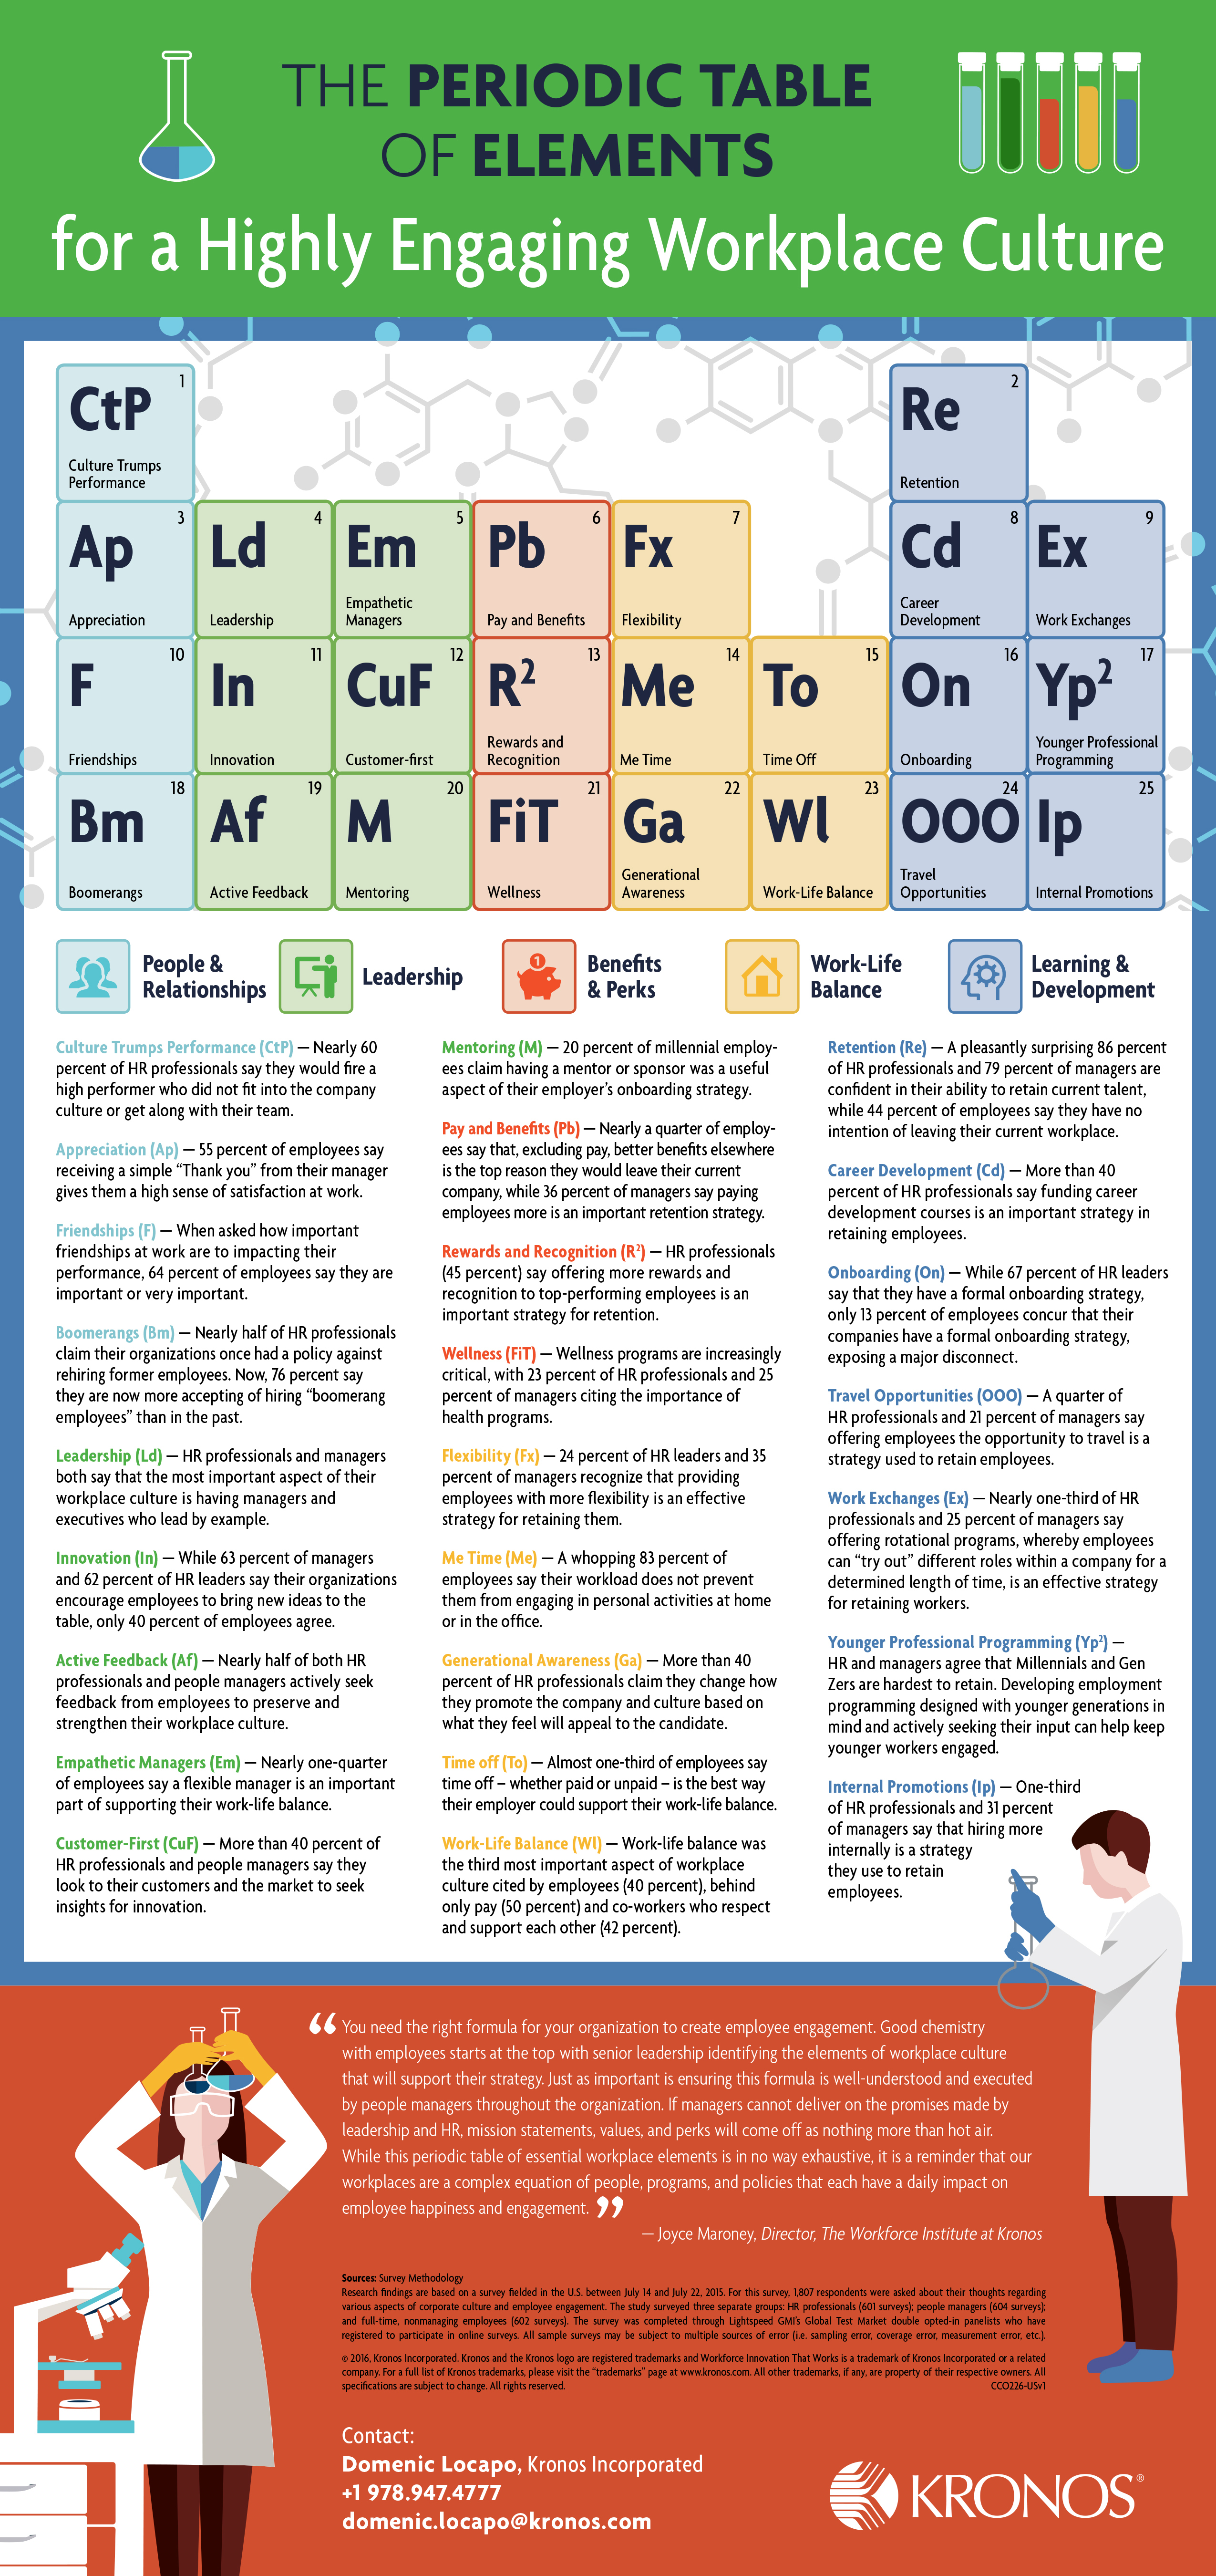 Elements of a highly engaging workplace culture highground while it wont help you memorize atomic numbers it will share the elements of an engaging company culture gamestrikefo Images